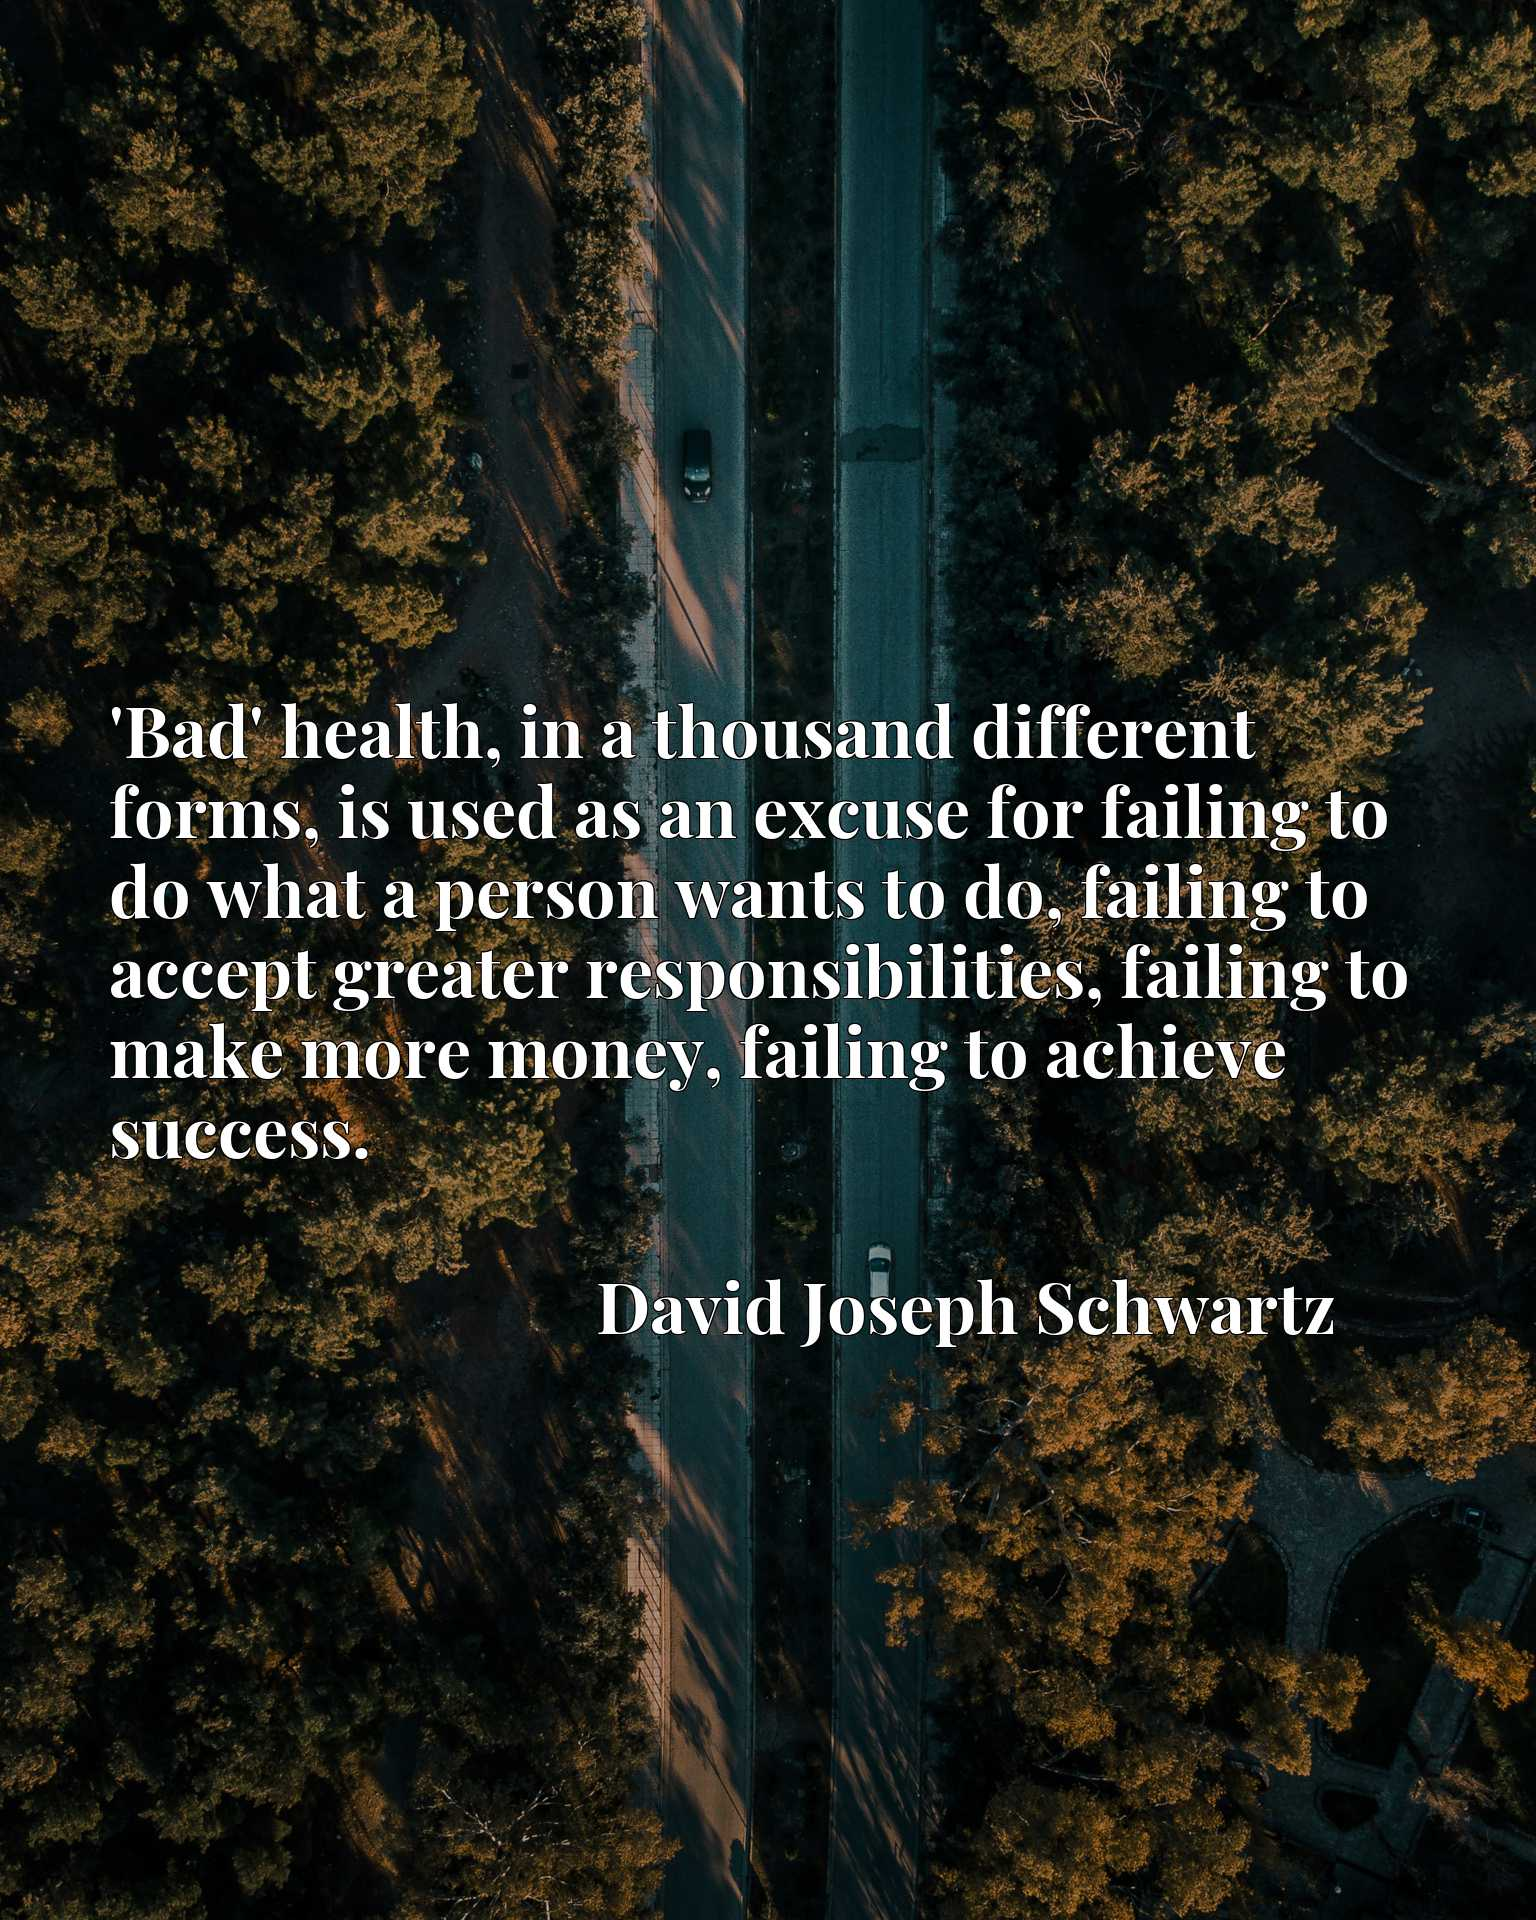 'Bad' health, in a thousand different forms, is used as an excuse for failing to do what a person wants to do, failing to accept greater responsibilities, failing to make more money, failing to achieve success.